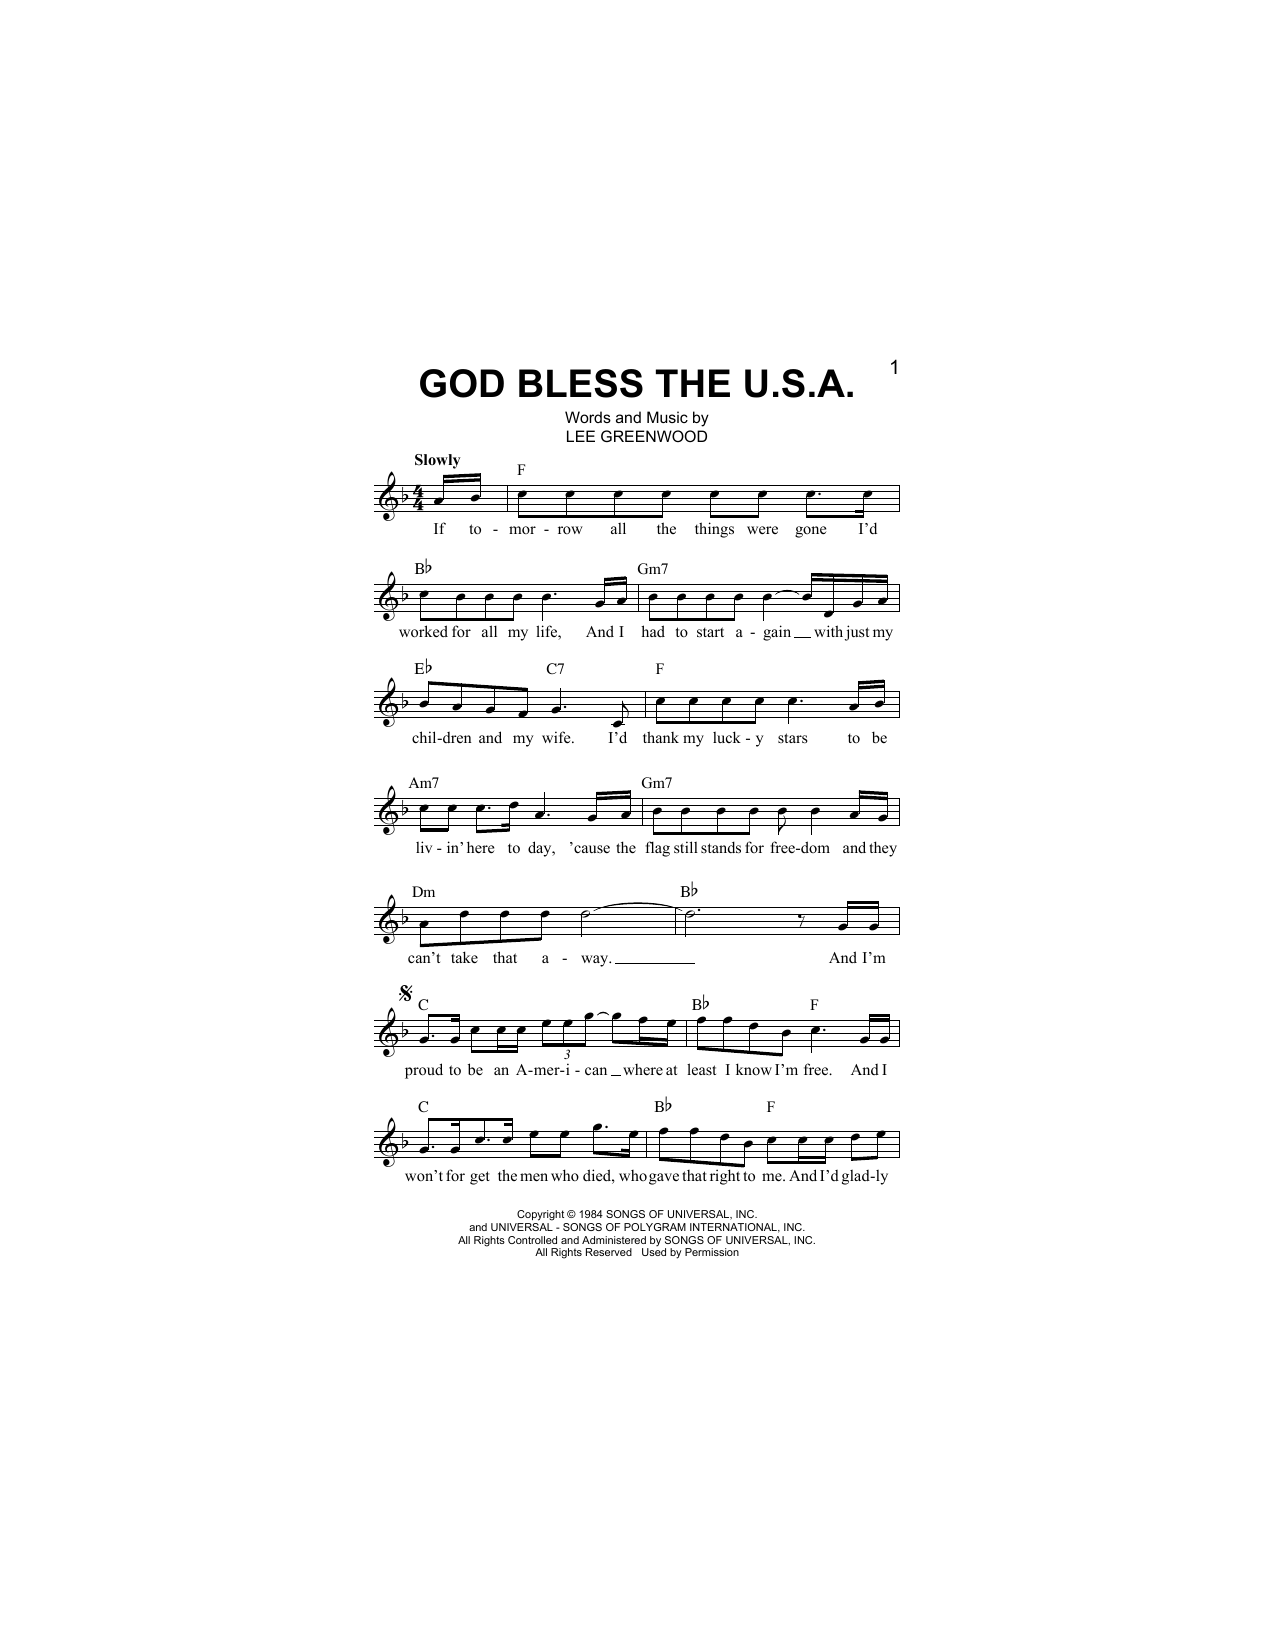 God Bless The U.S.A. Sheet Music